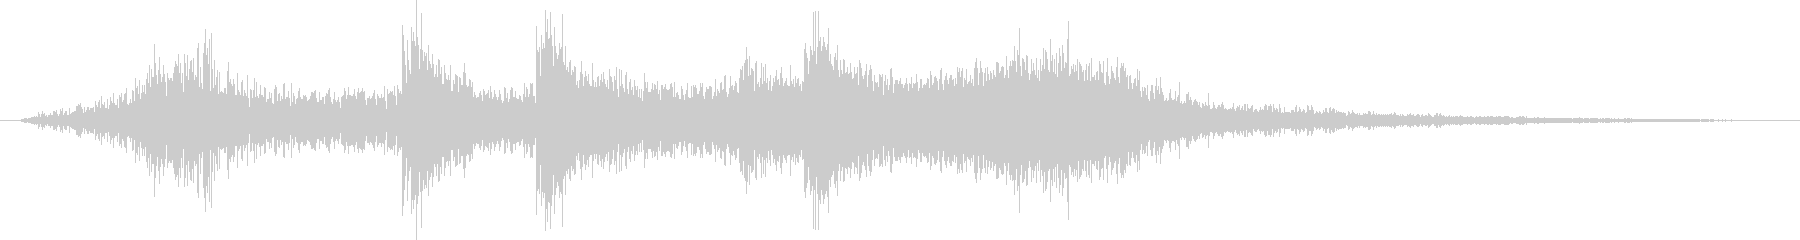 Rock and powerful clap jingle's unreproduced waveform